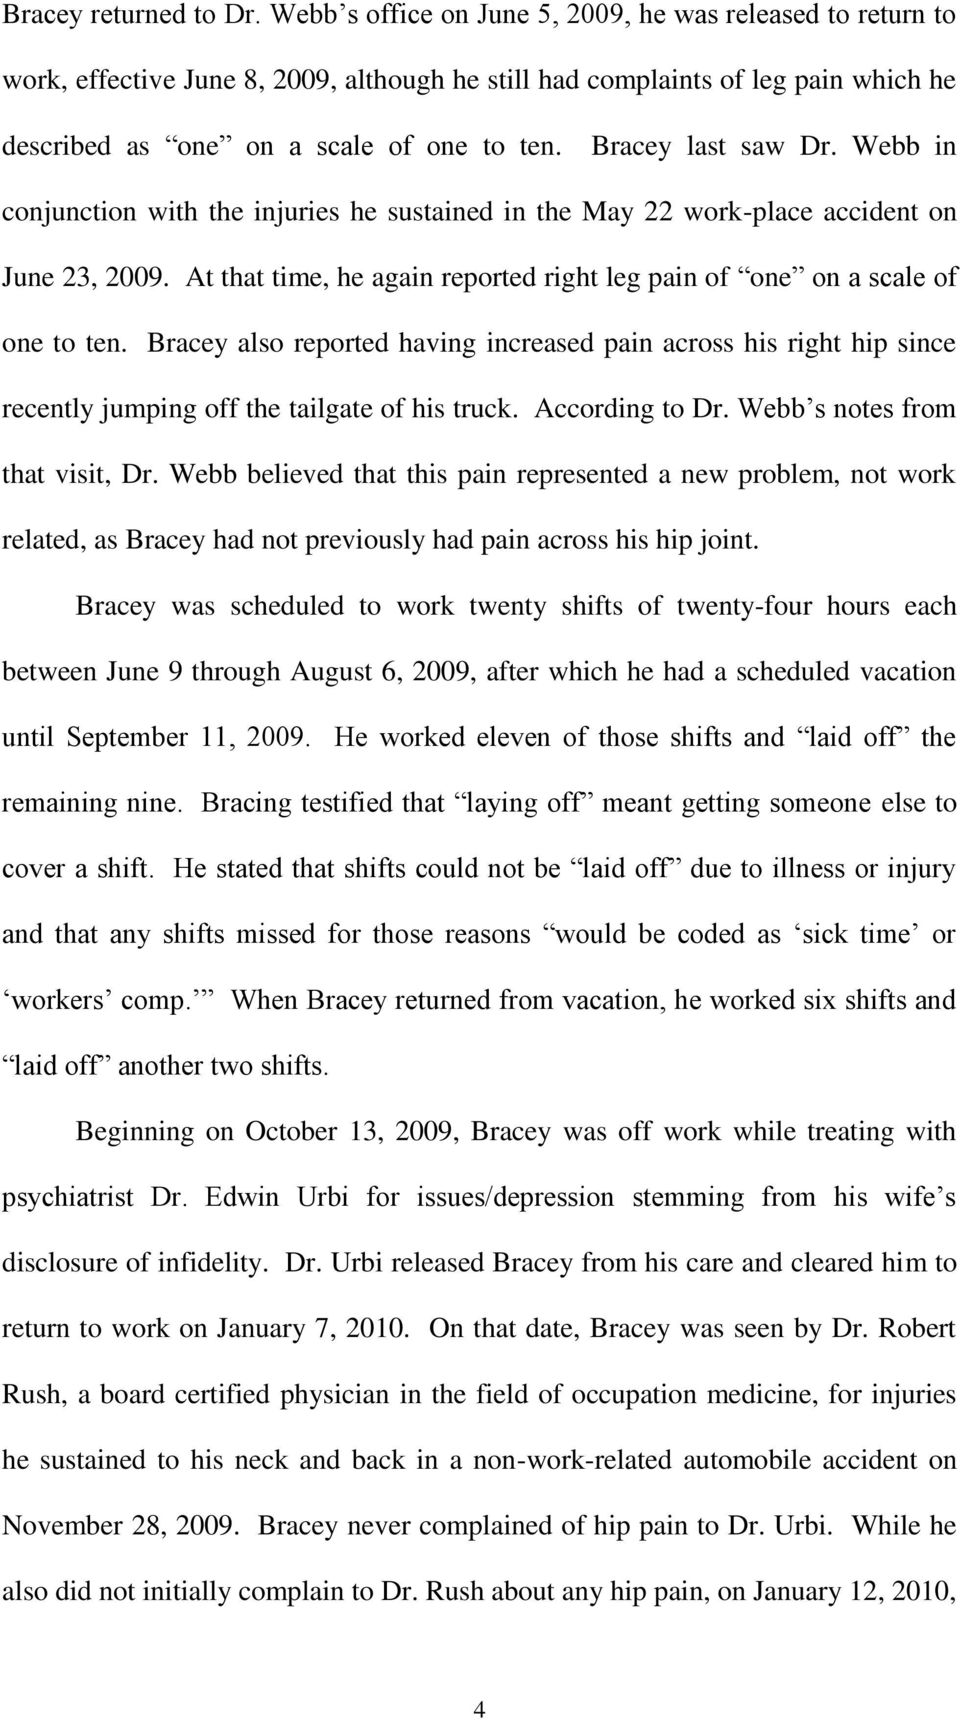 Bracey last saw Dr. Webb in conjunction with the injuries he sustained in the May 22 work-place accident on June 23, 2009.